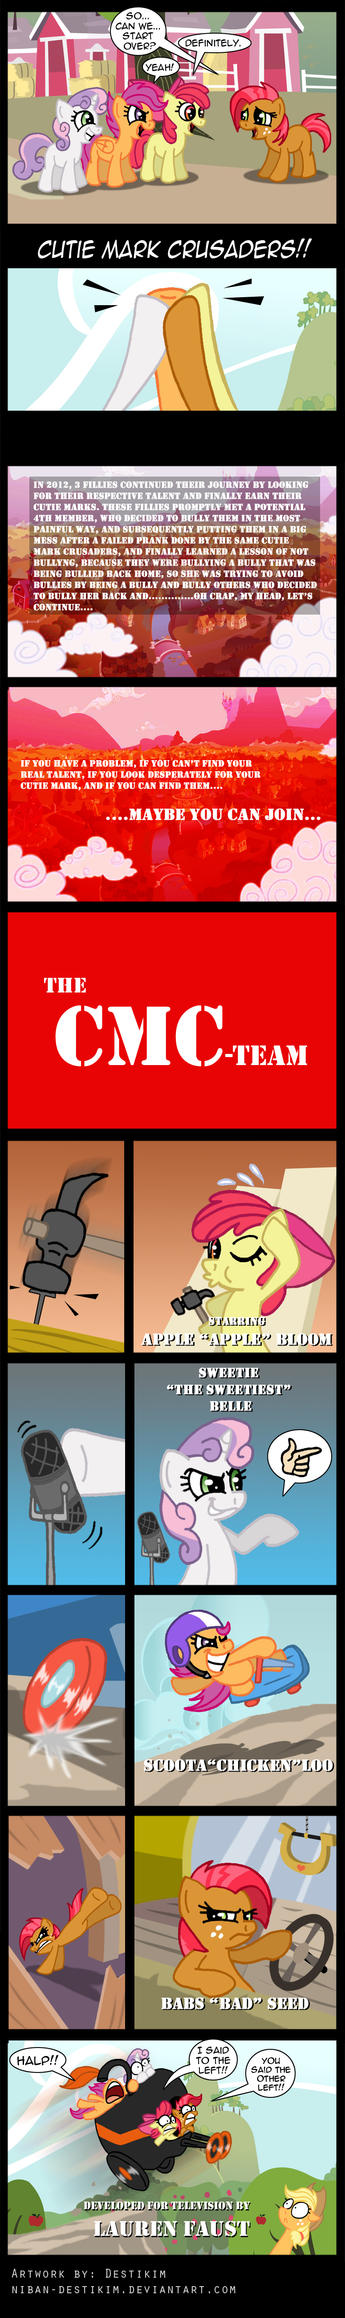 The CMC-Team by Niban-Destikim